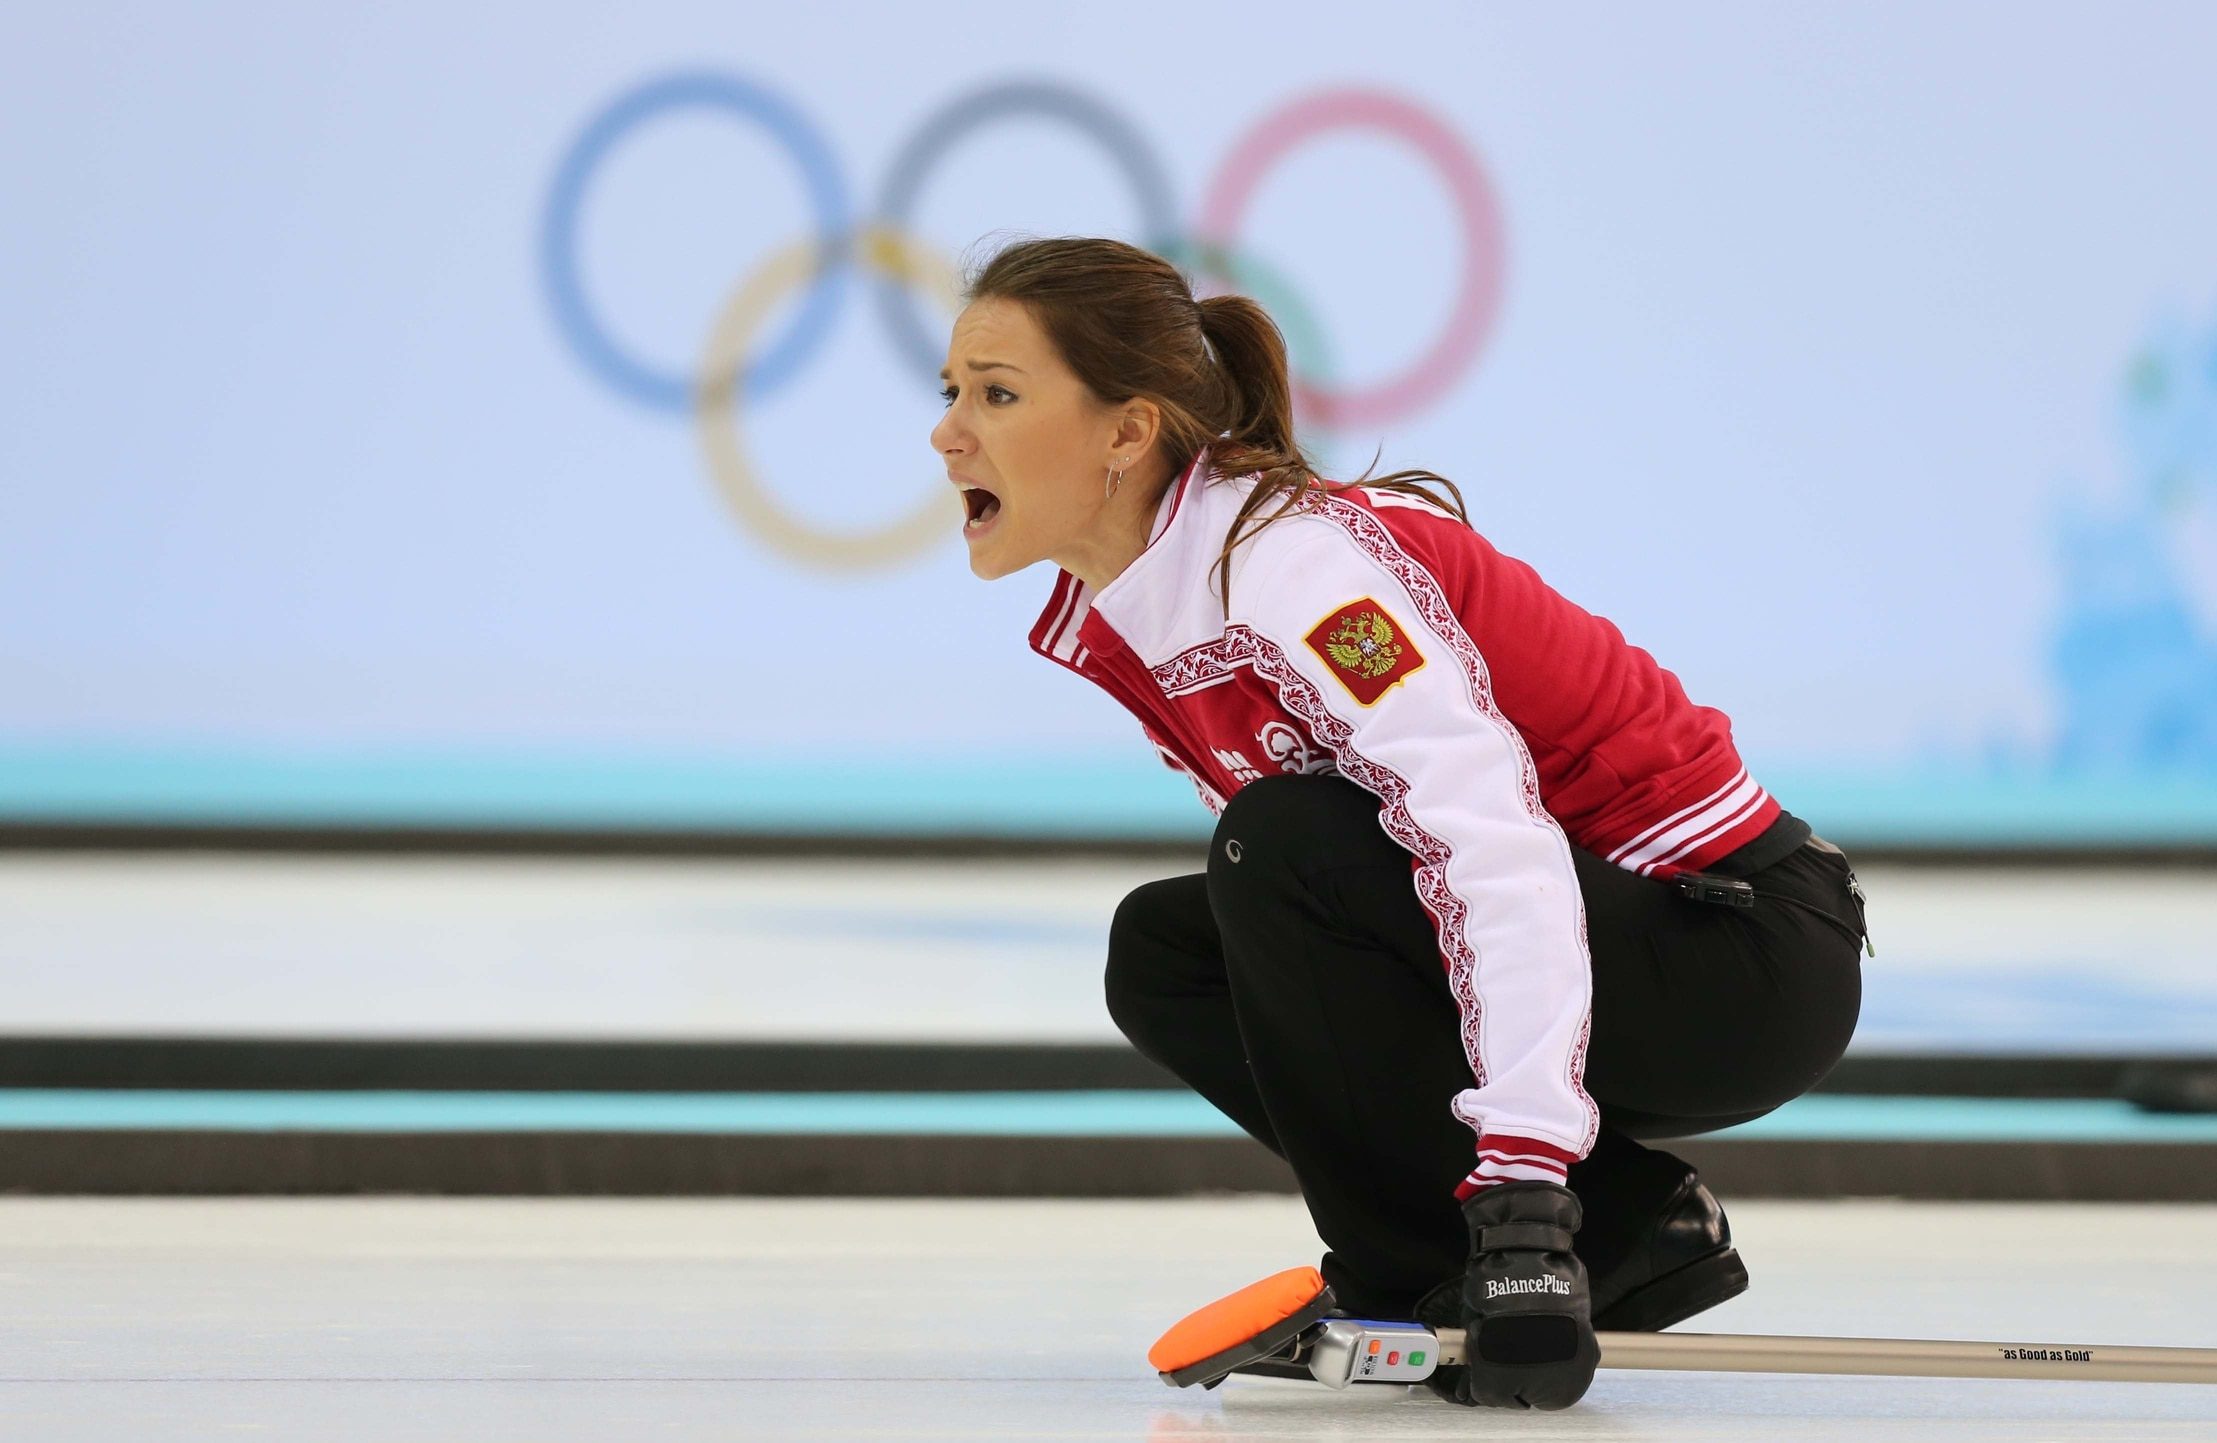 Orgasm Faces & Sounds Or Women's Curling